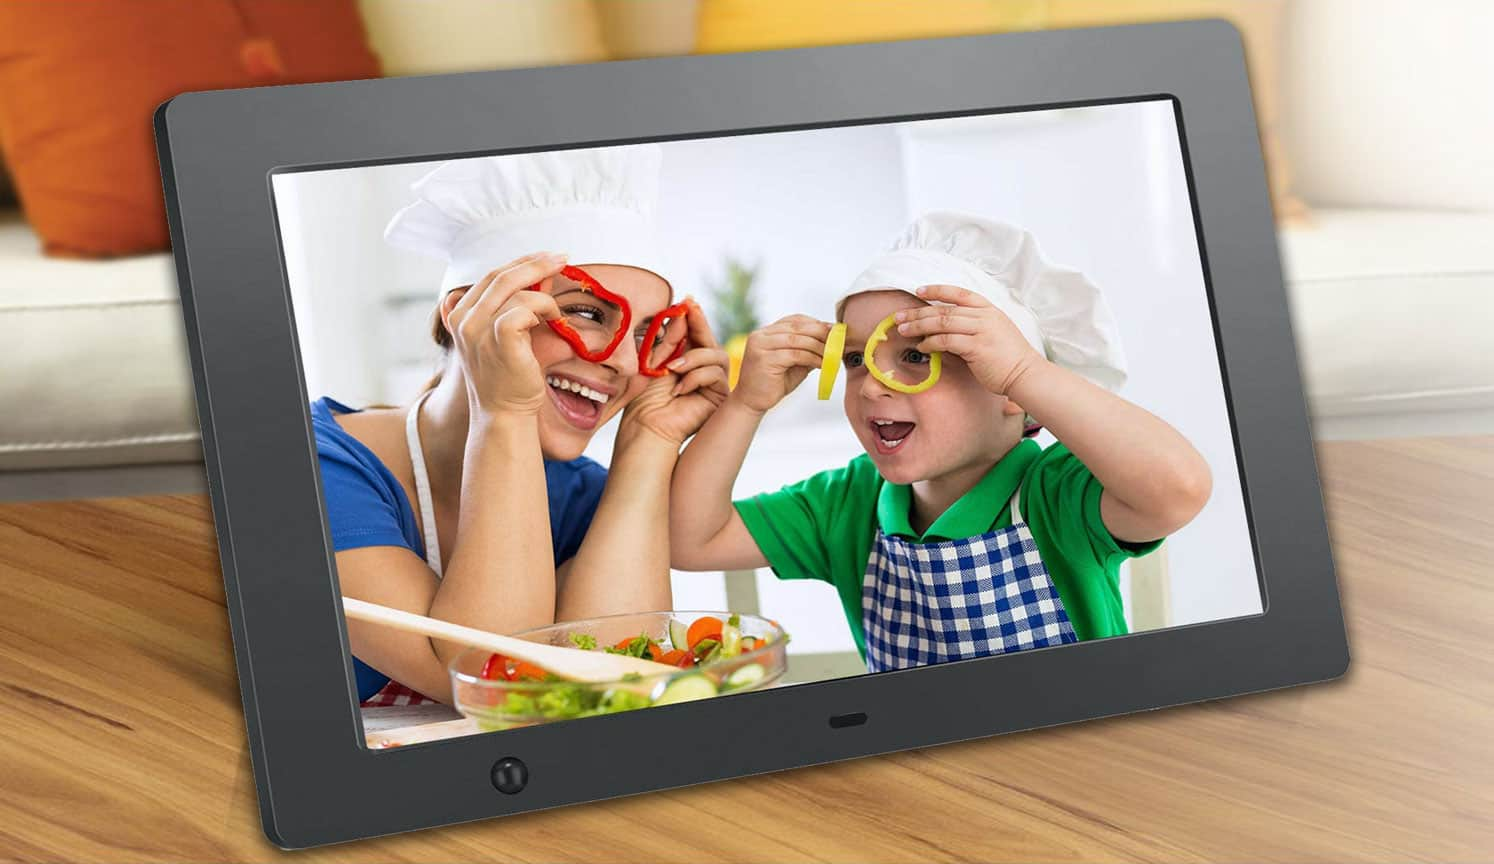 Picture of mom with her kid in a electronic picture frame